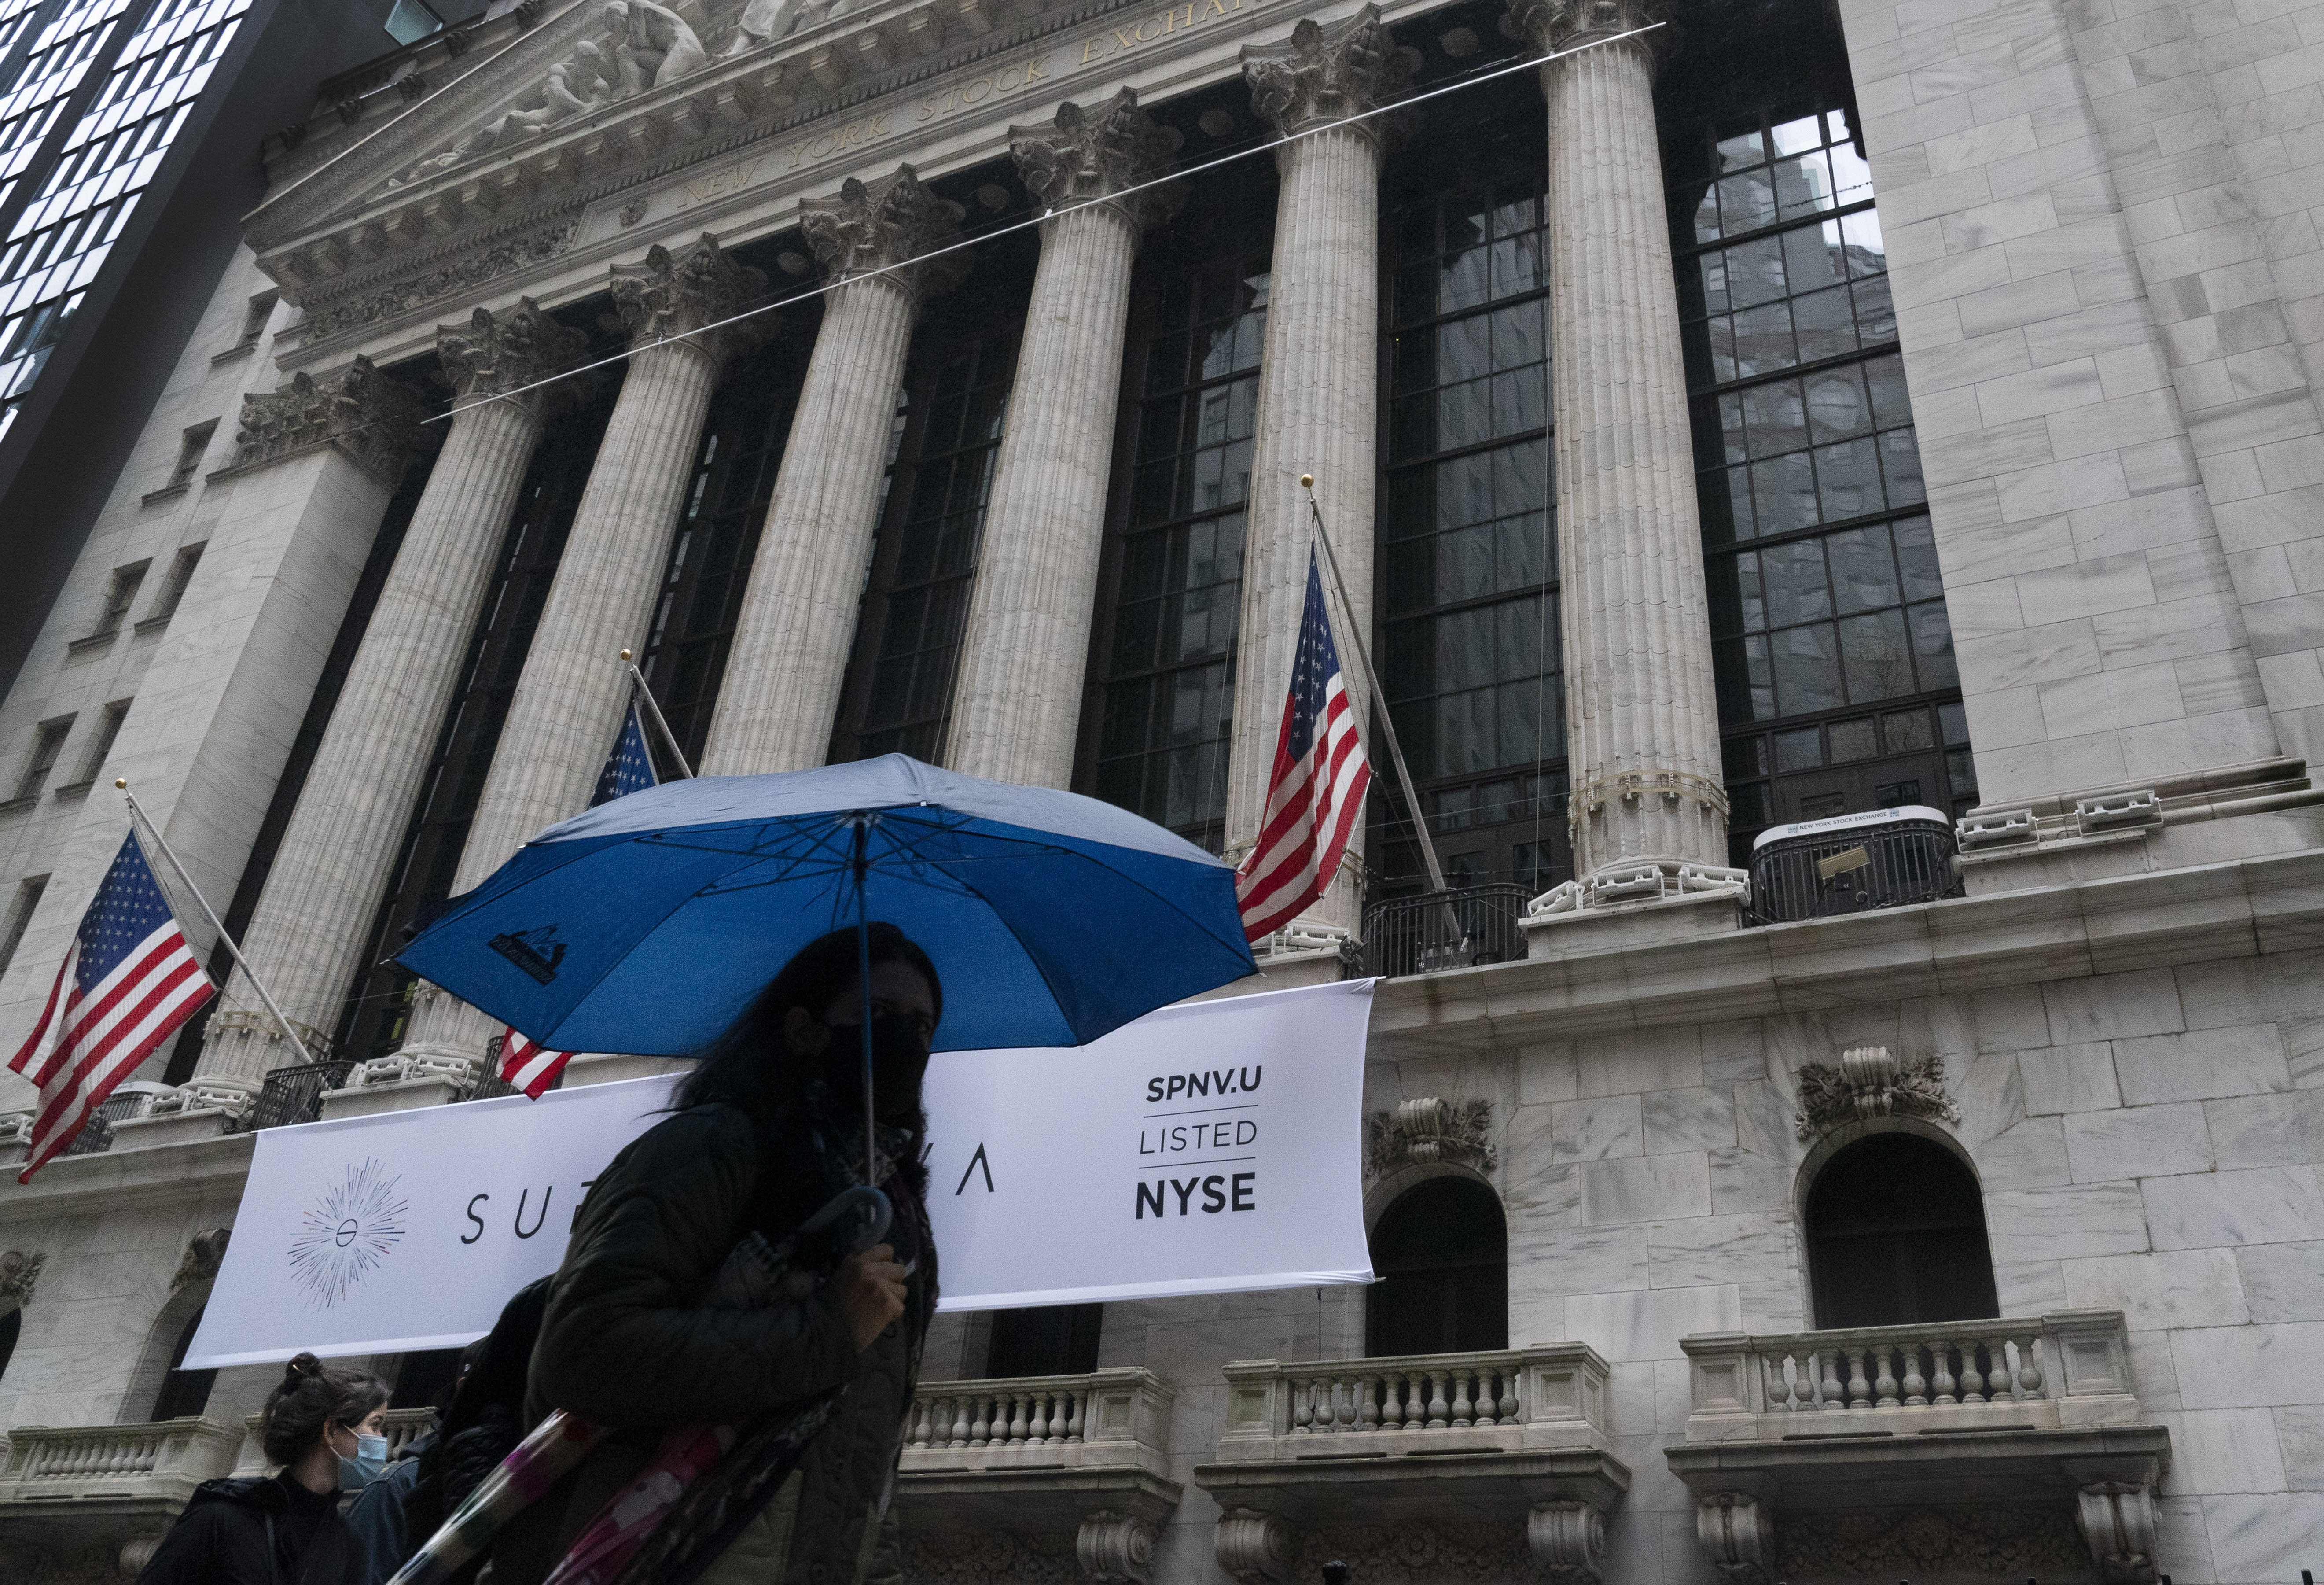 Wall Street scuffles as worsening pandemic slows its rally